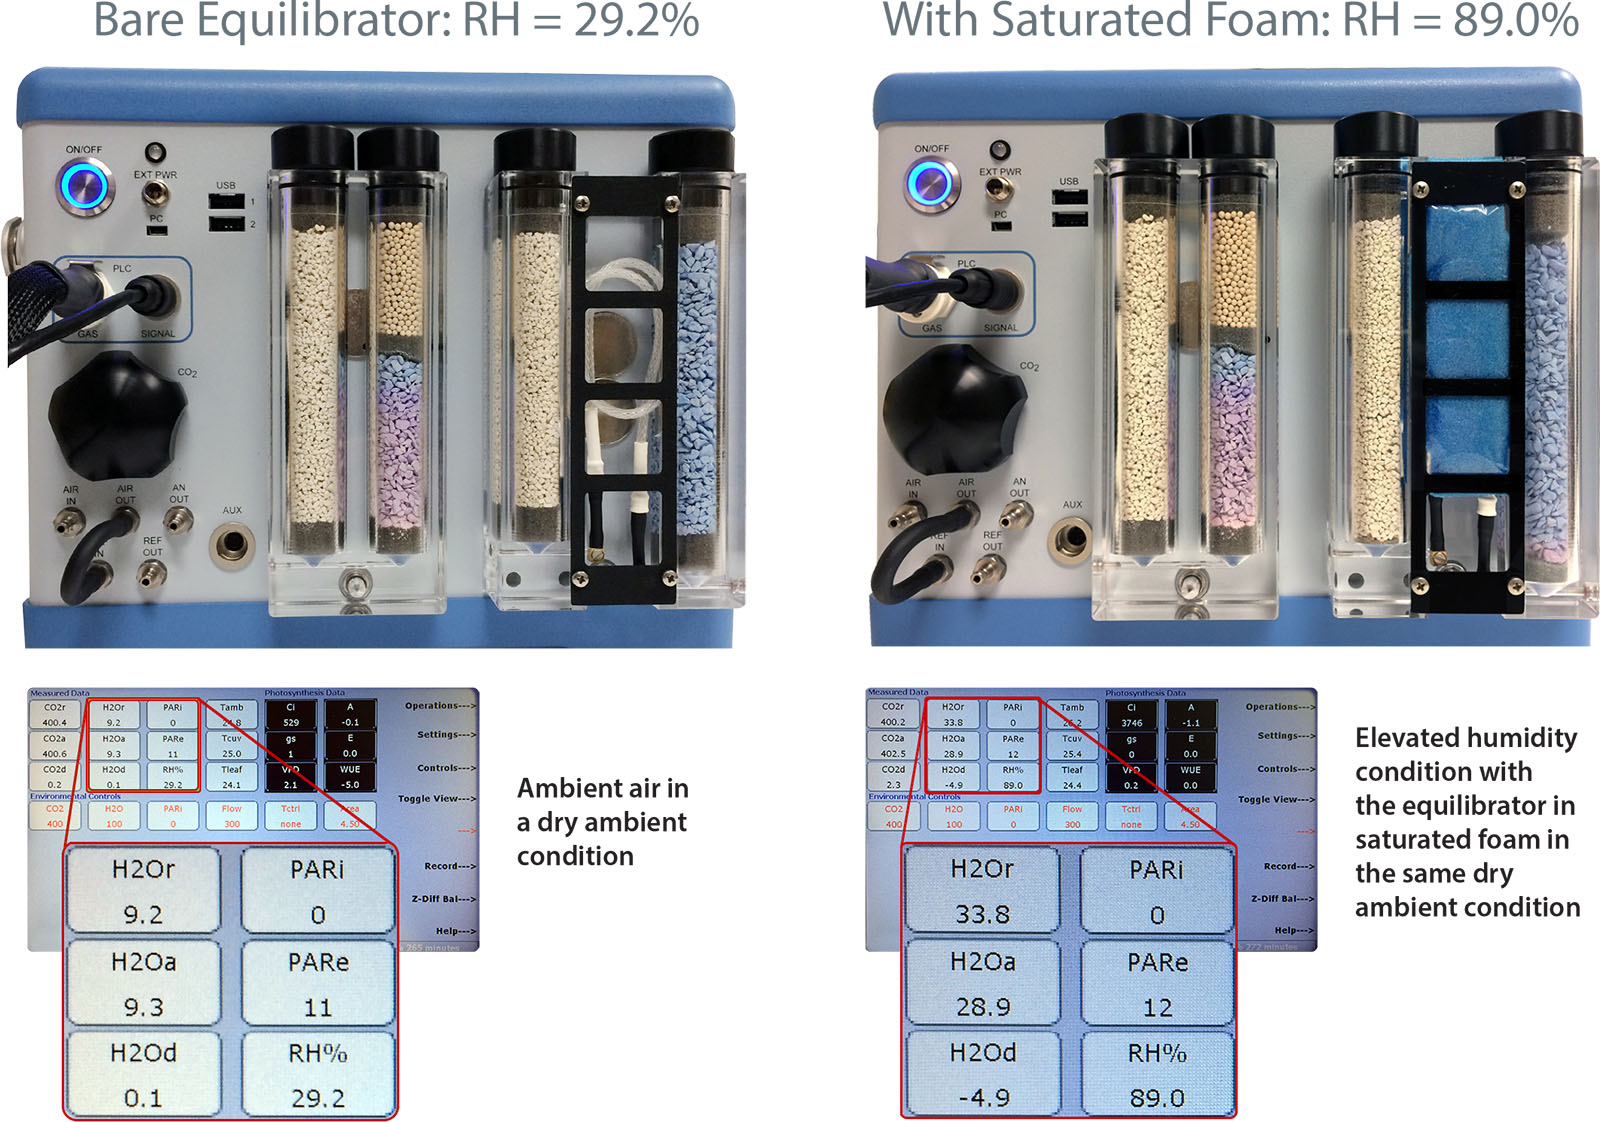 Elevated humidity condition with equilipbrator in saturated foam in same dry ambient condition